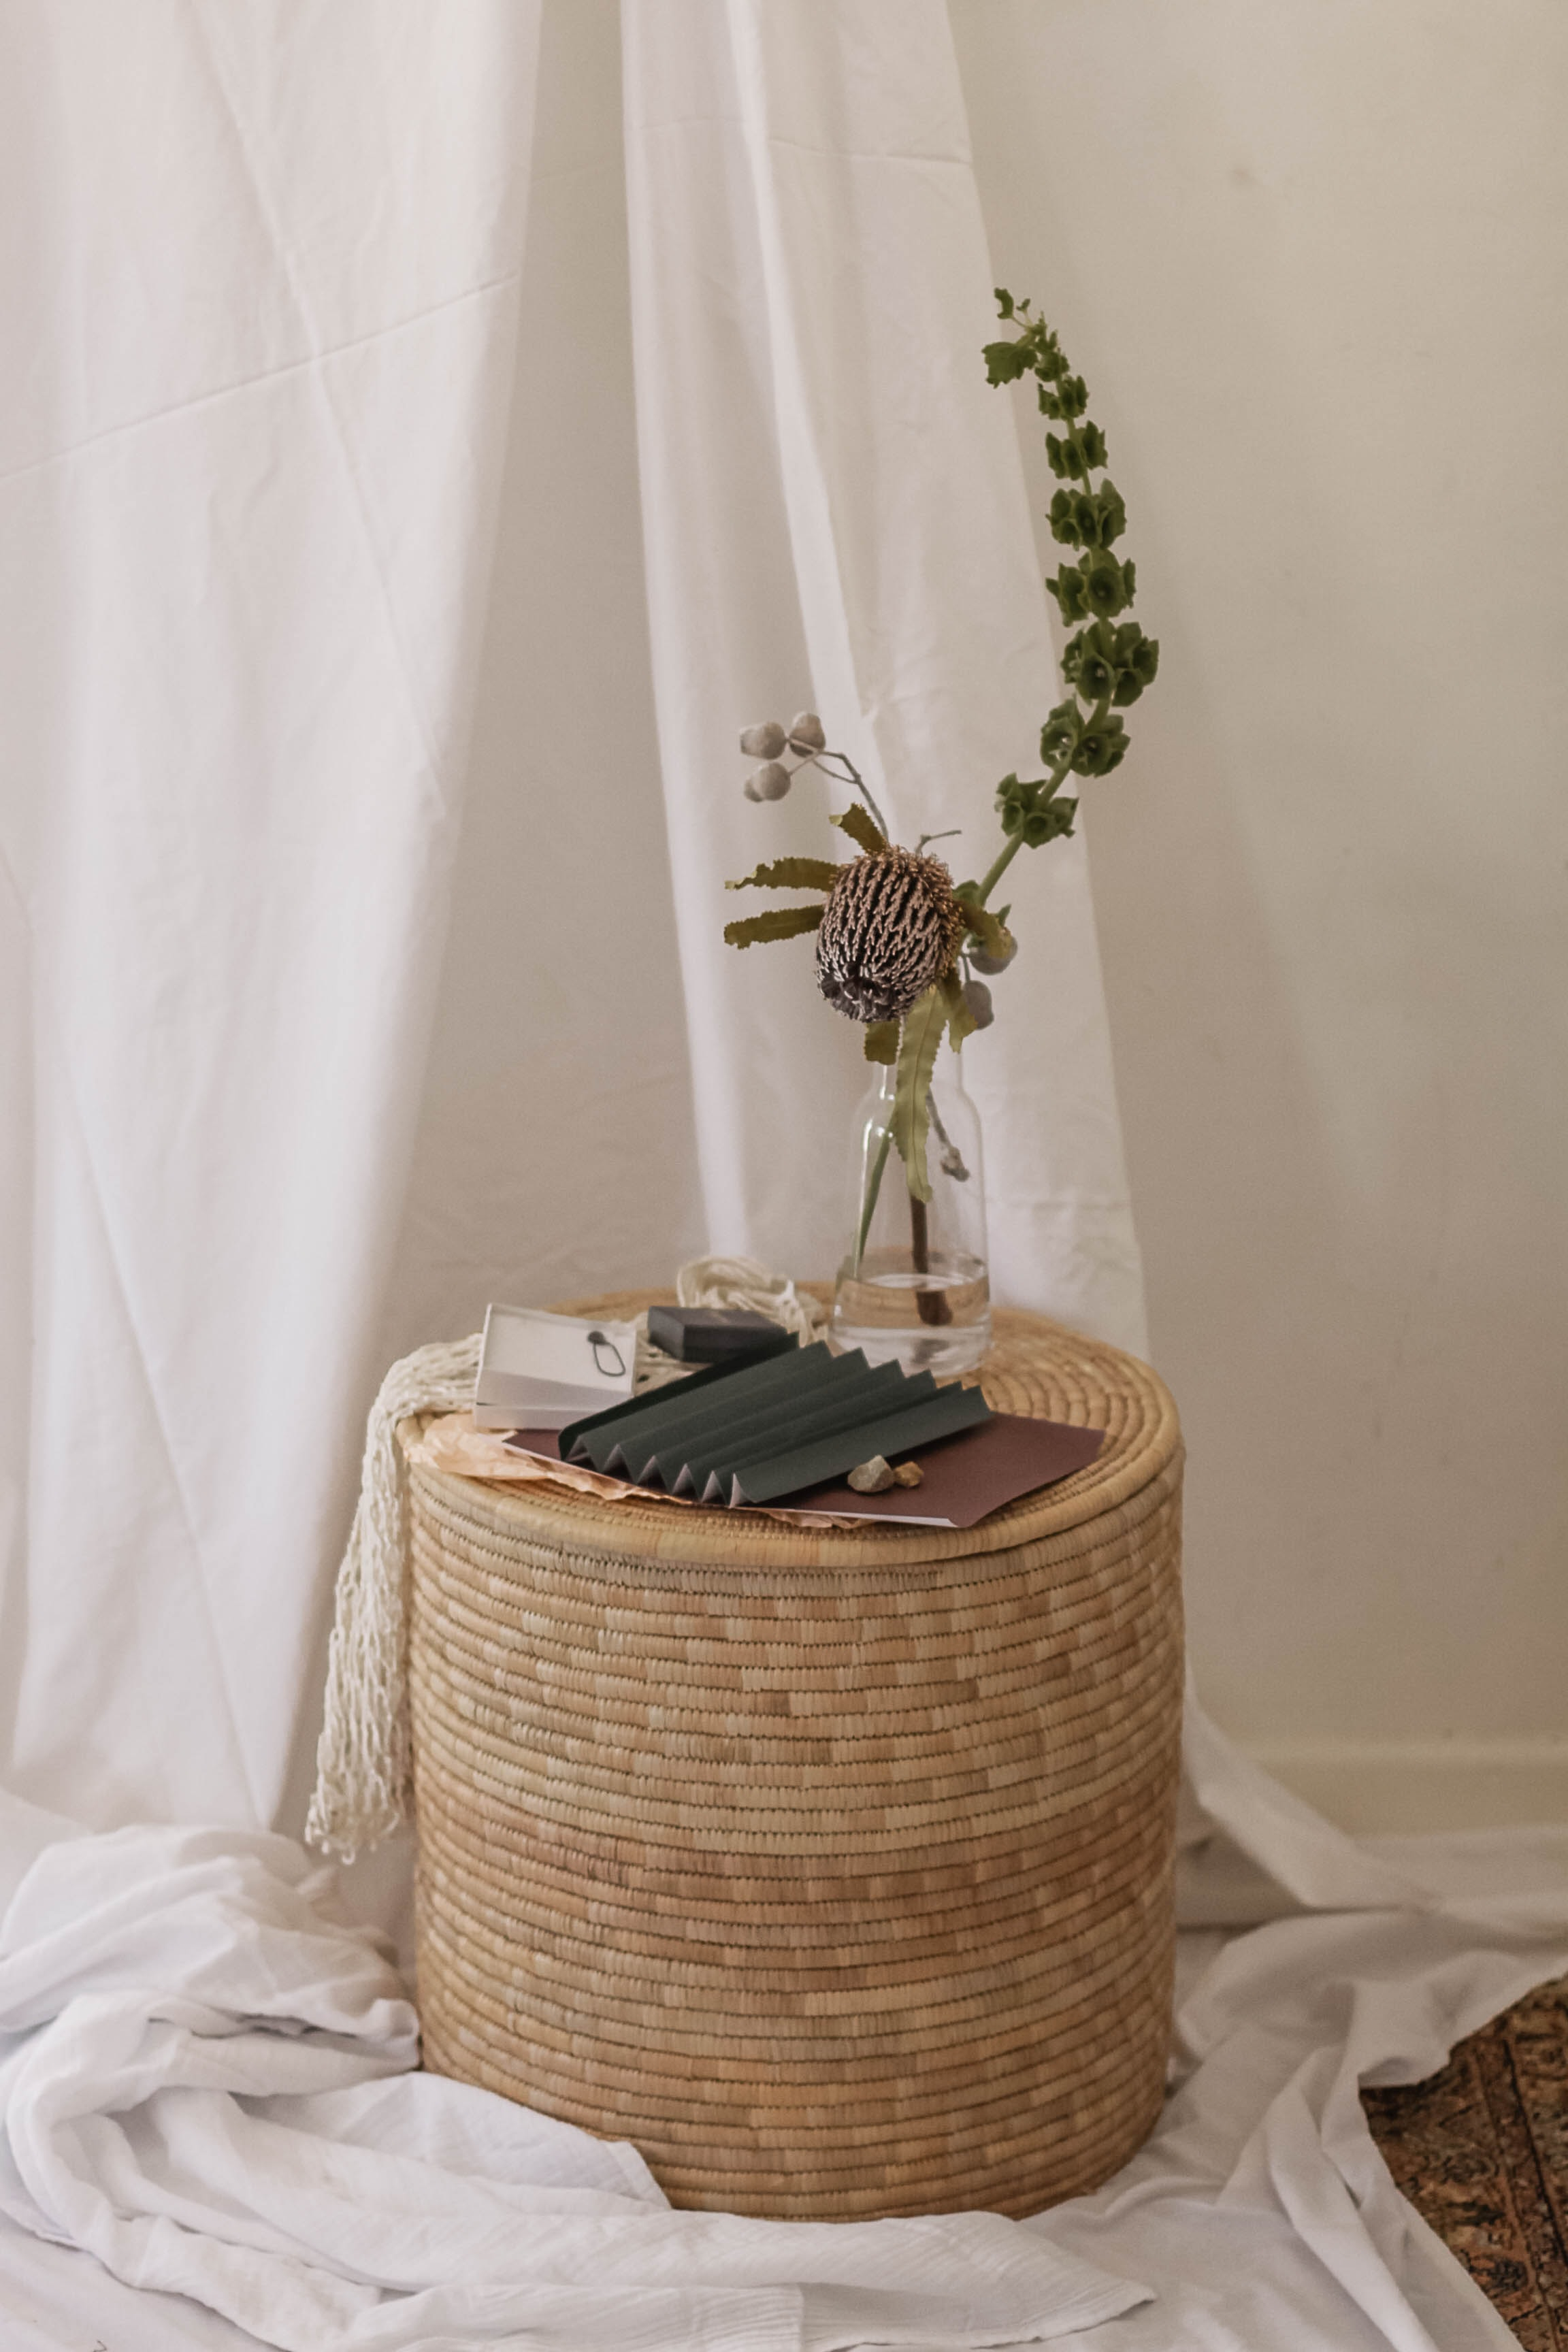 plants in glass bottle on brown wicker table